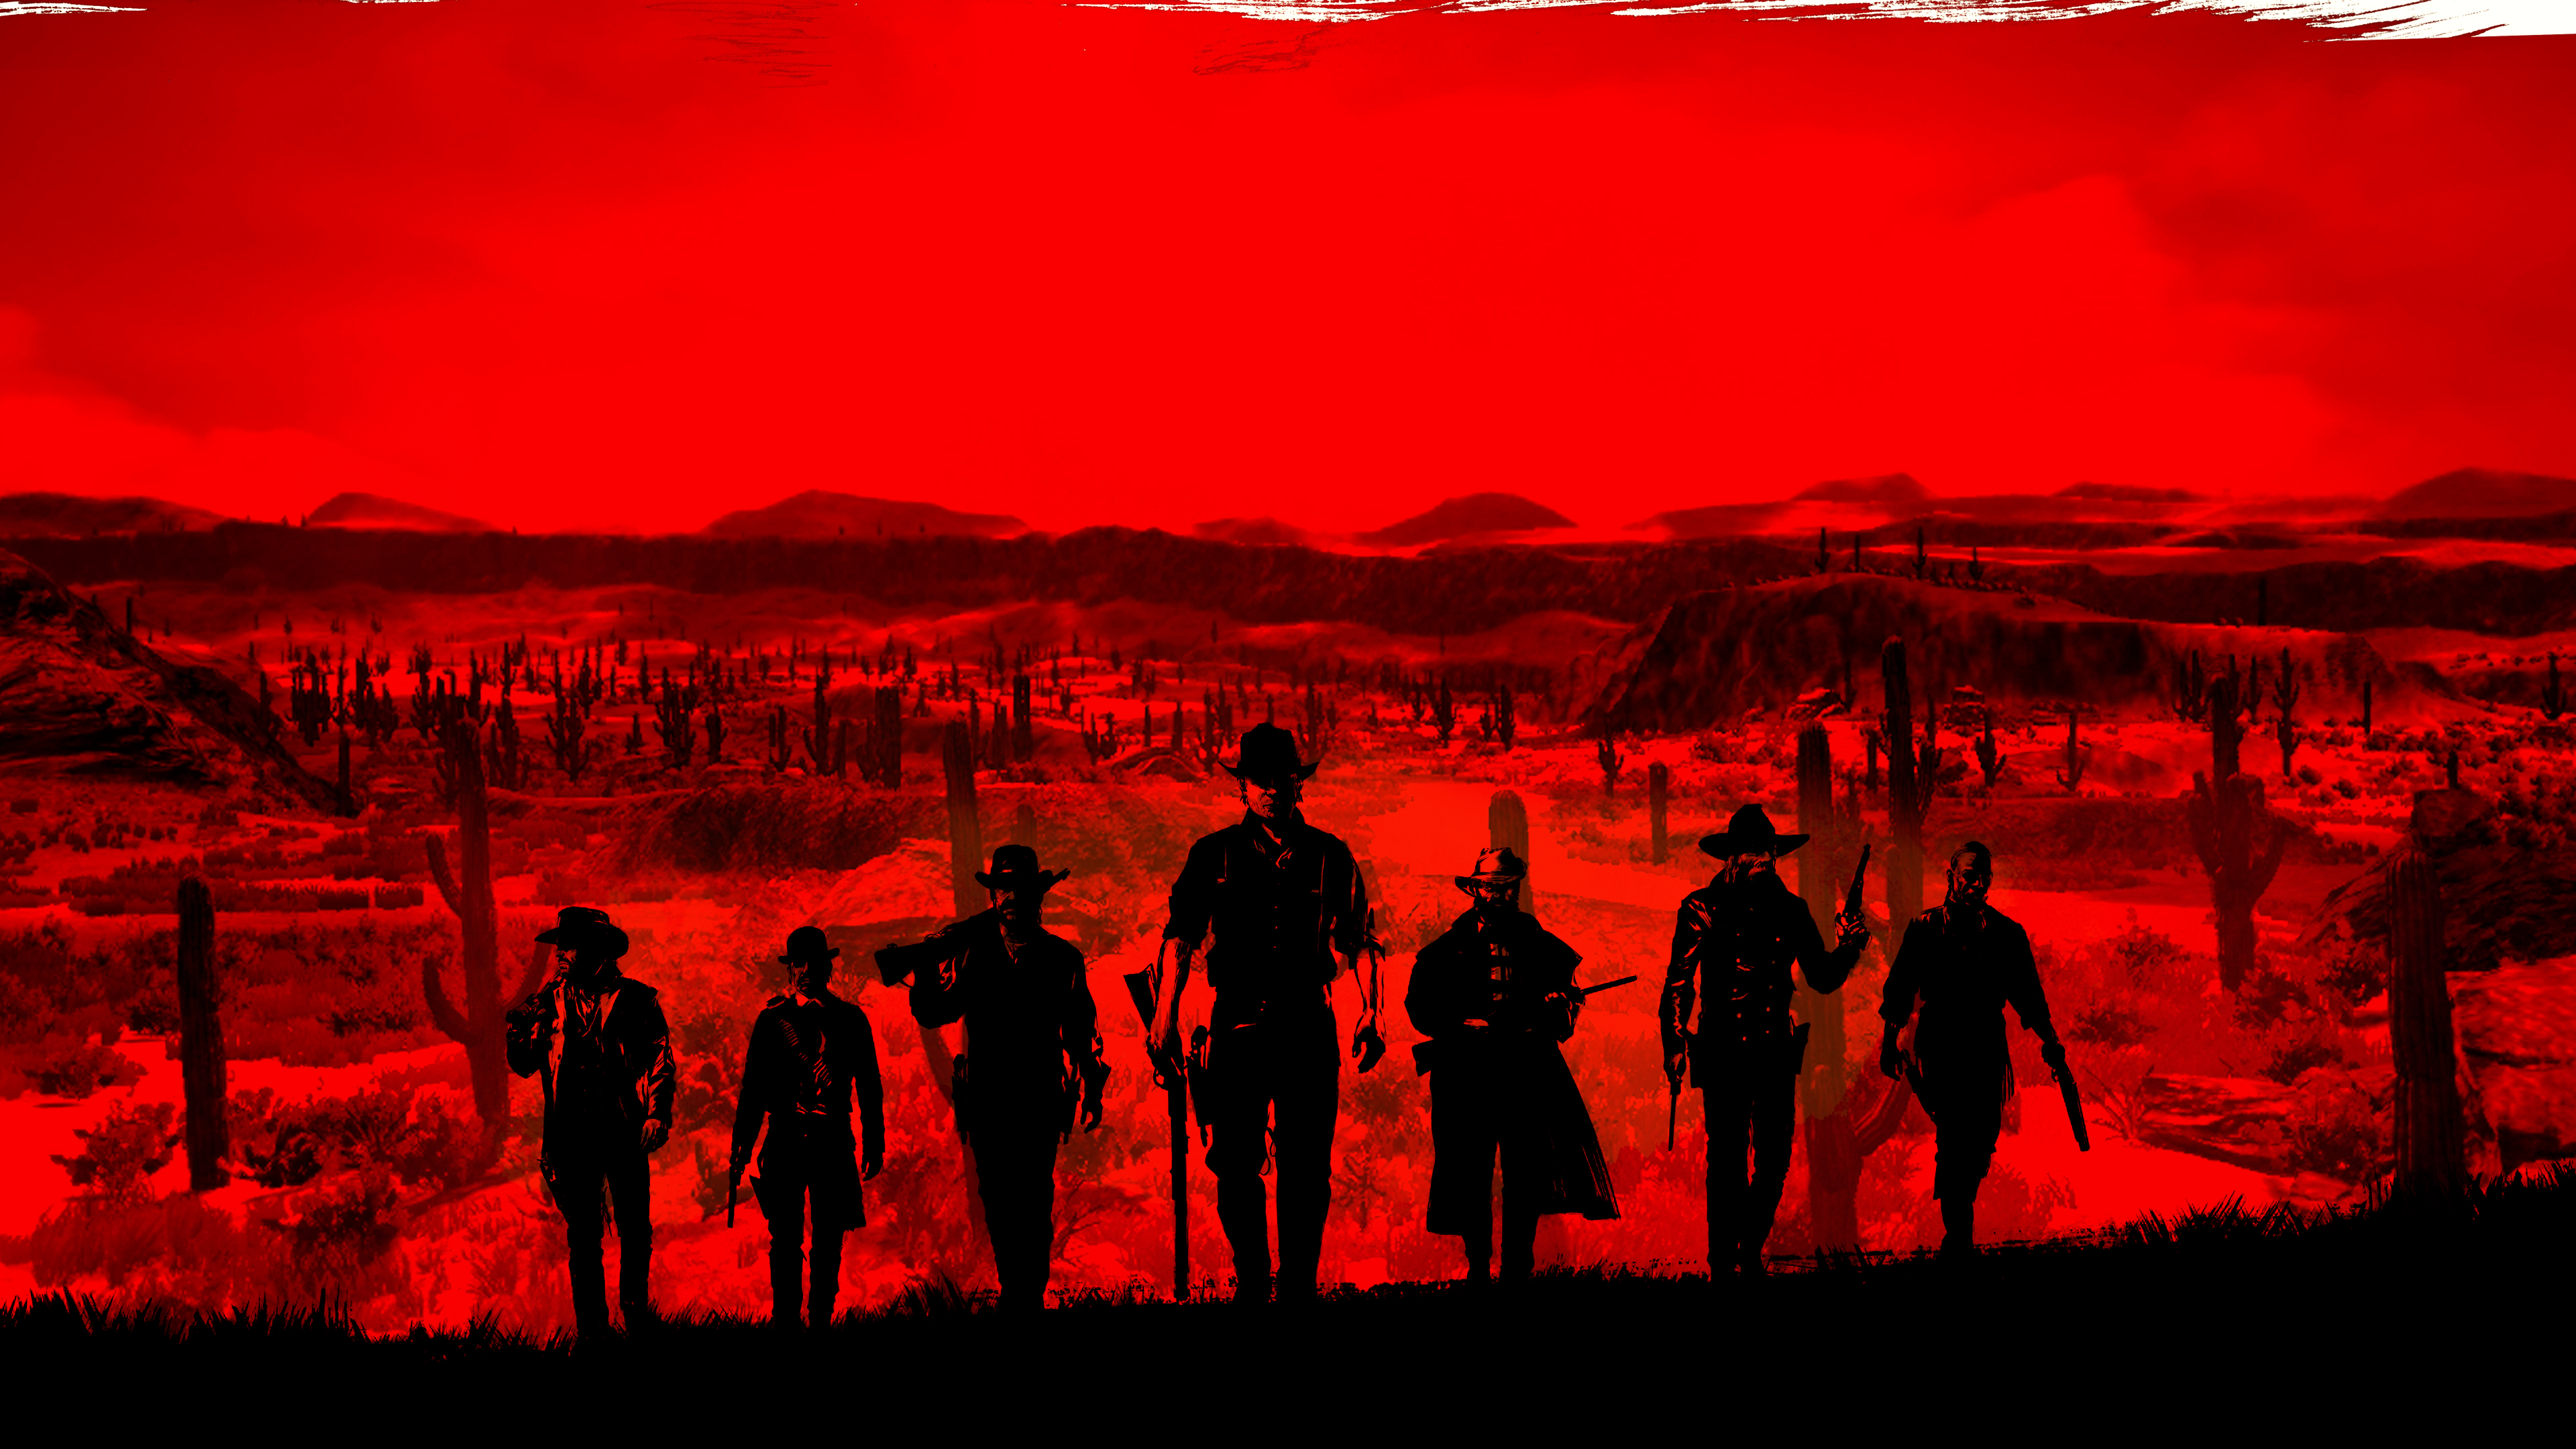 Free Red Dead Redemption ChromeBook Wallpaper Ready For ...